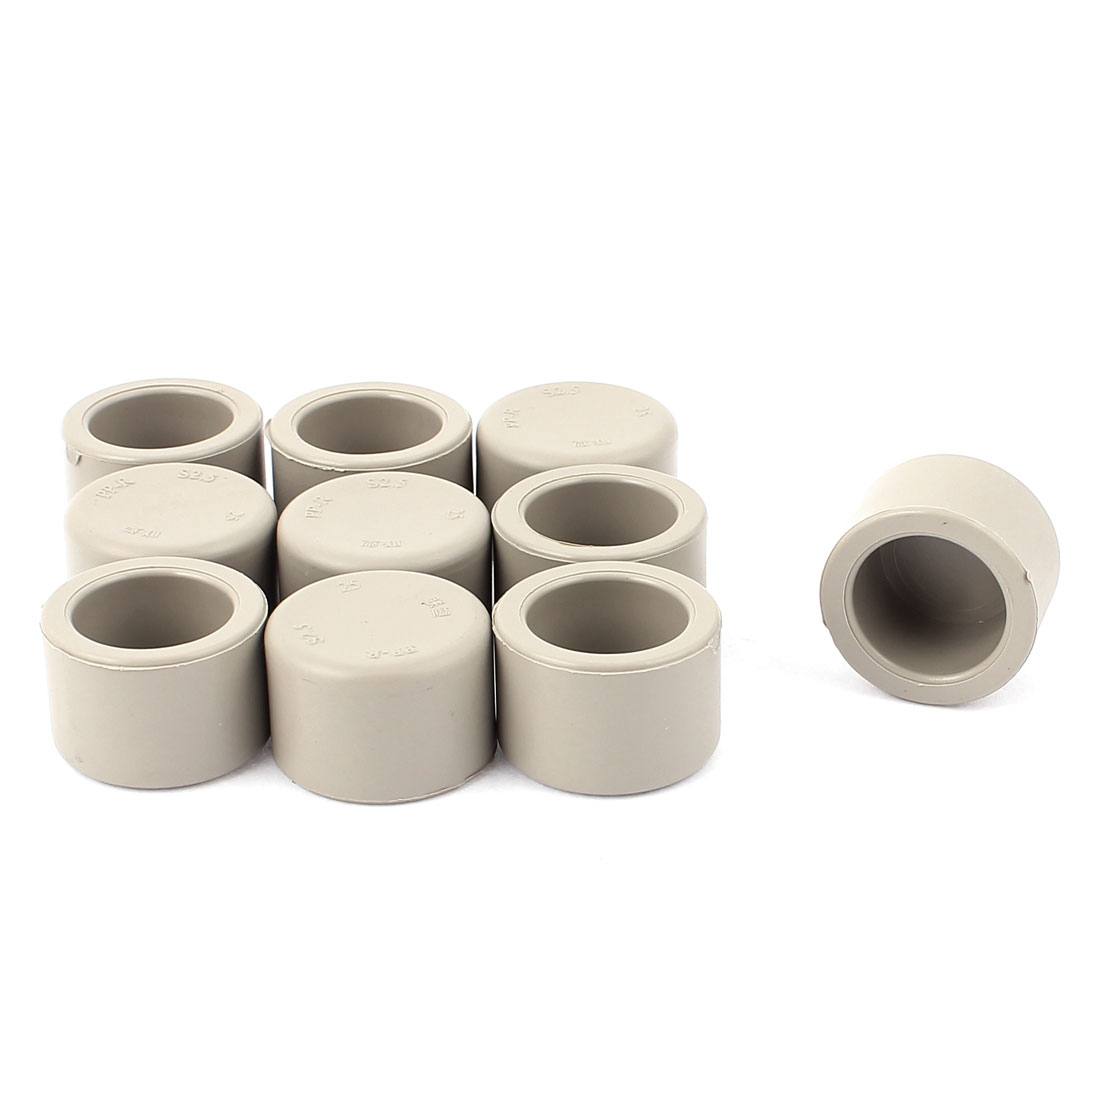 23.8mm Inner Dia PPR Round End Pipe Cap Cover 10pcs for Water Pipe Fittings